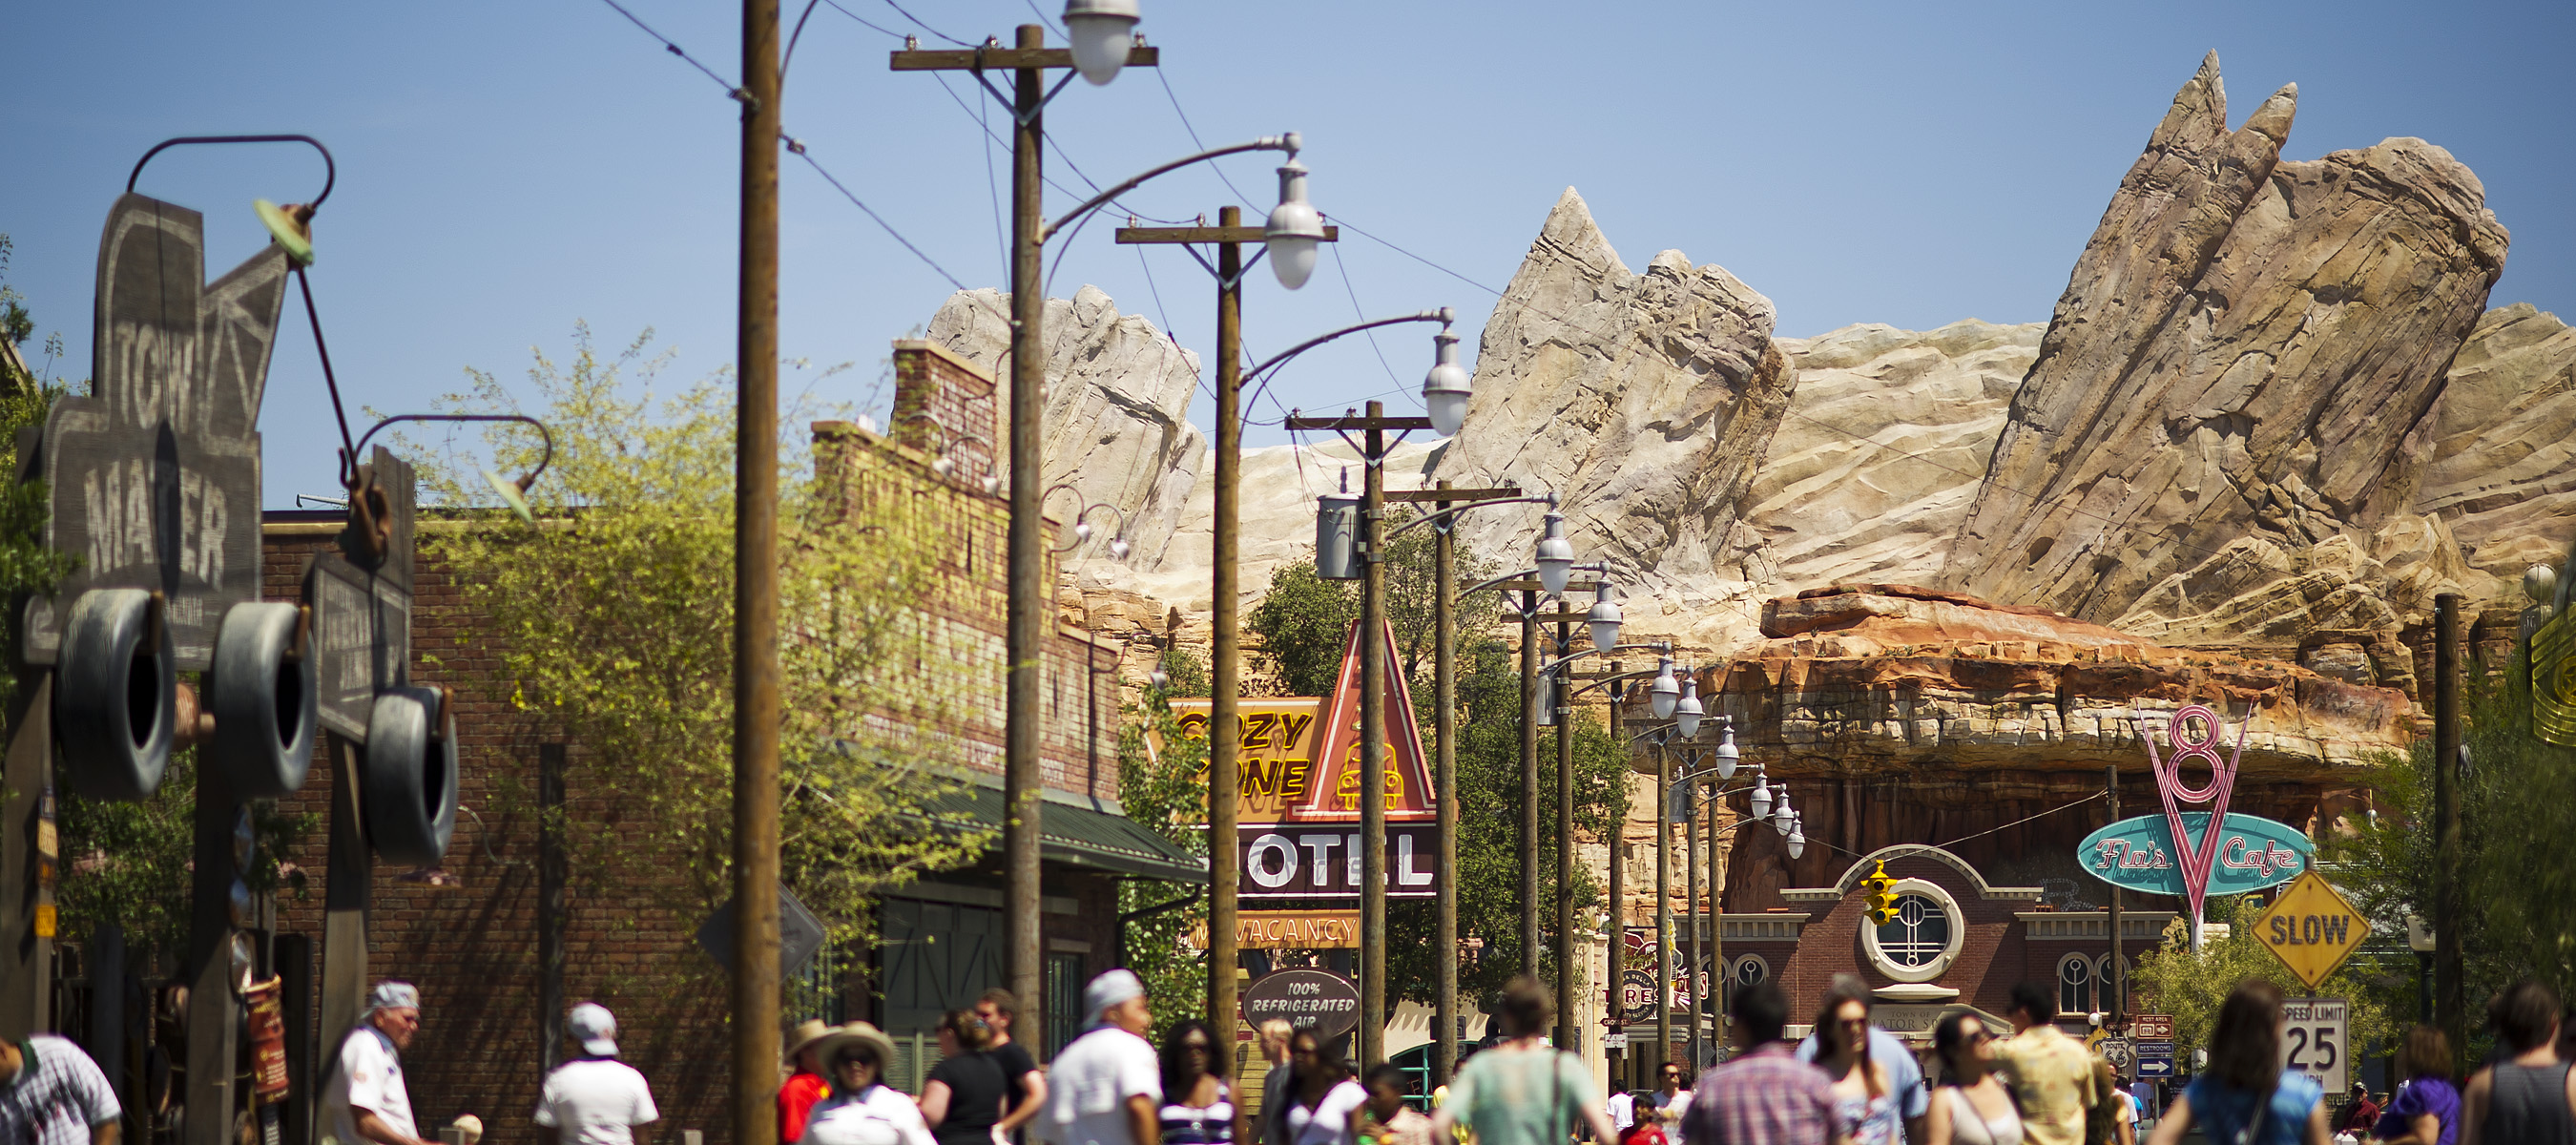 Planning A Vacation To Cars Land At Disney California Adventure - Disney adventure